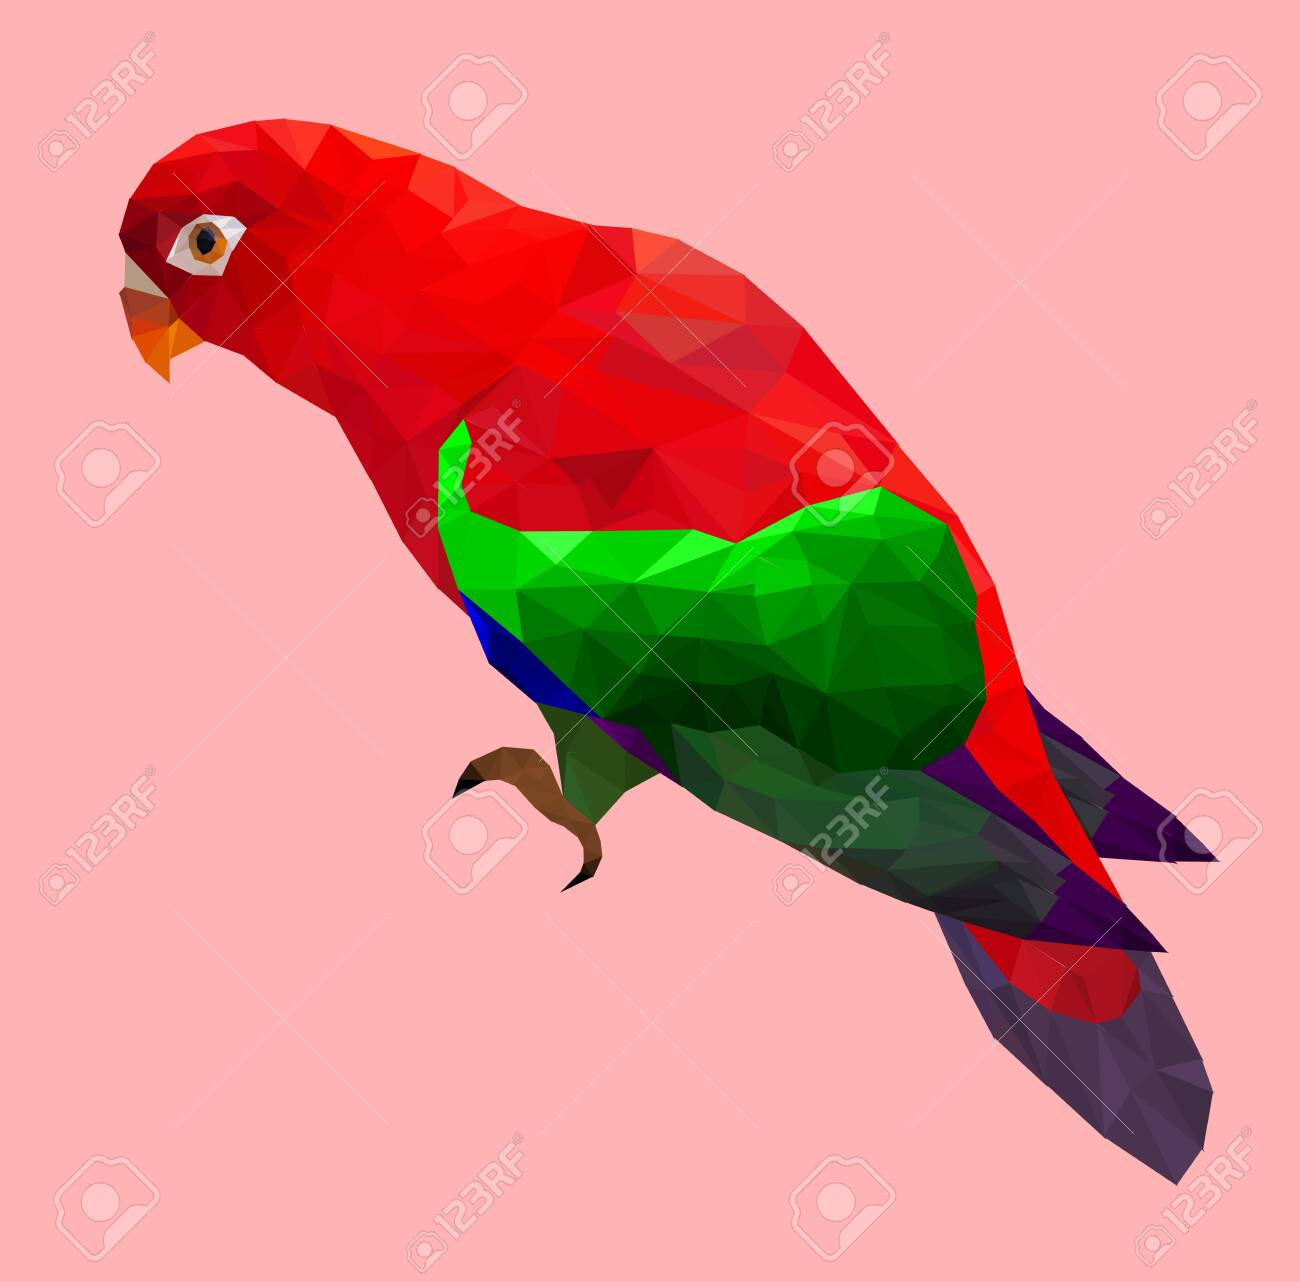 Low poly colorful parrot bird on pink back ground,animal geometric